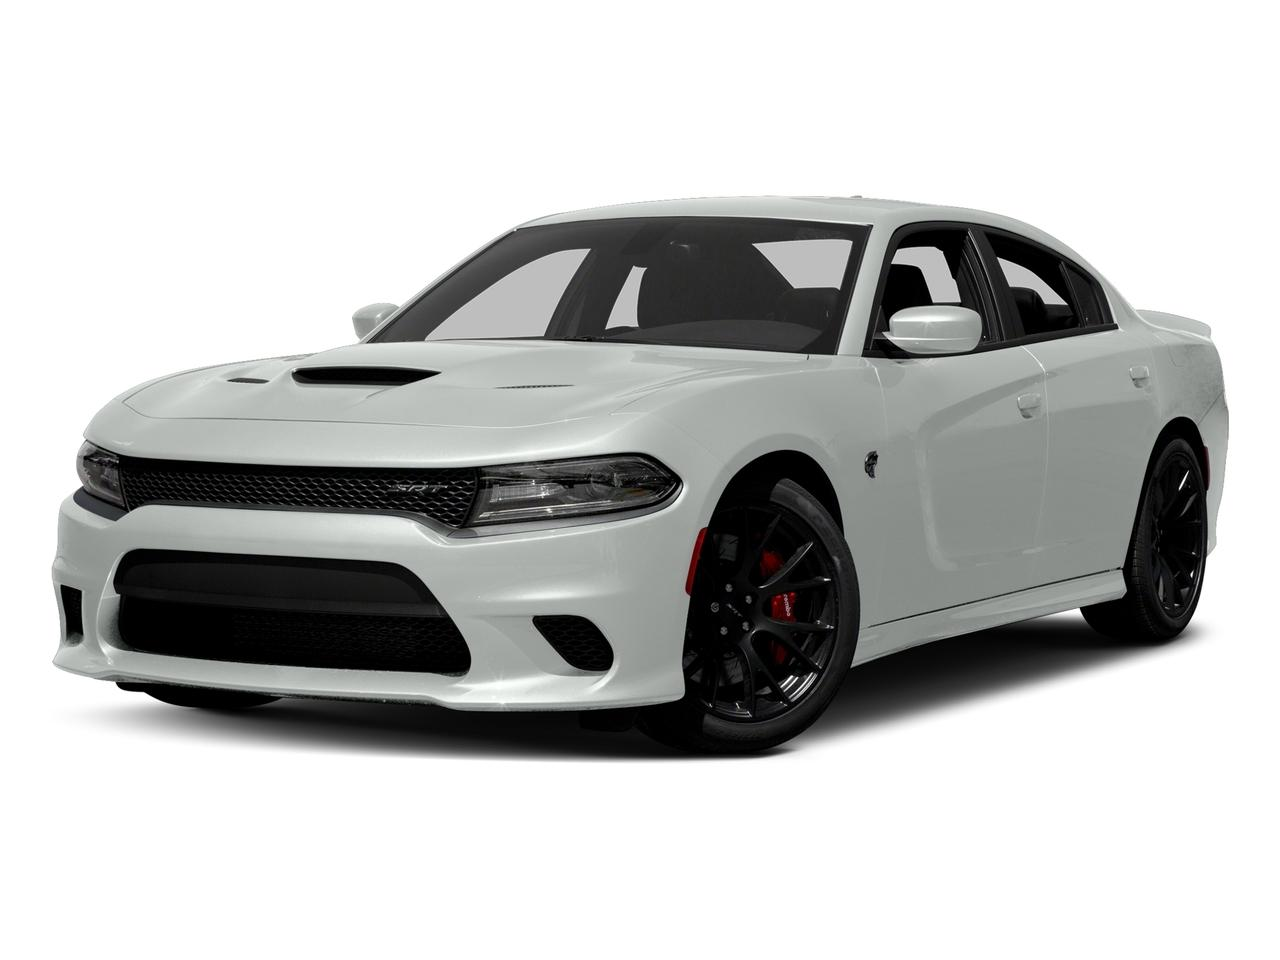 2016 Dodge Charger Vehicle Photo in DULUTH, GA 30096